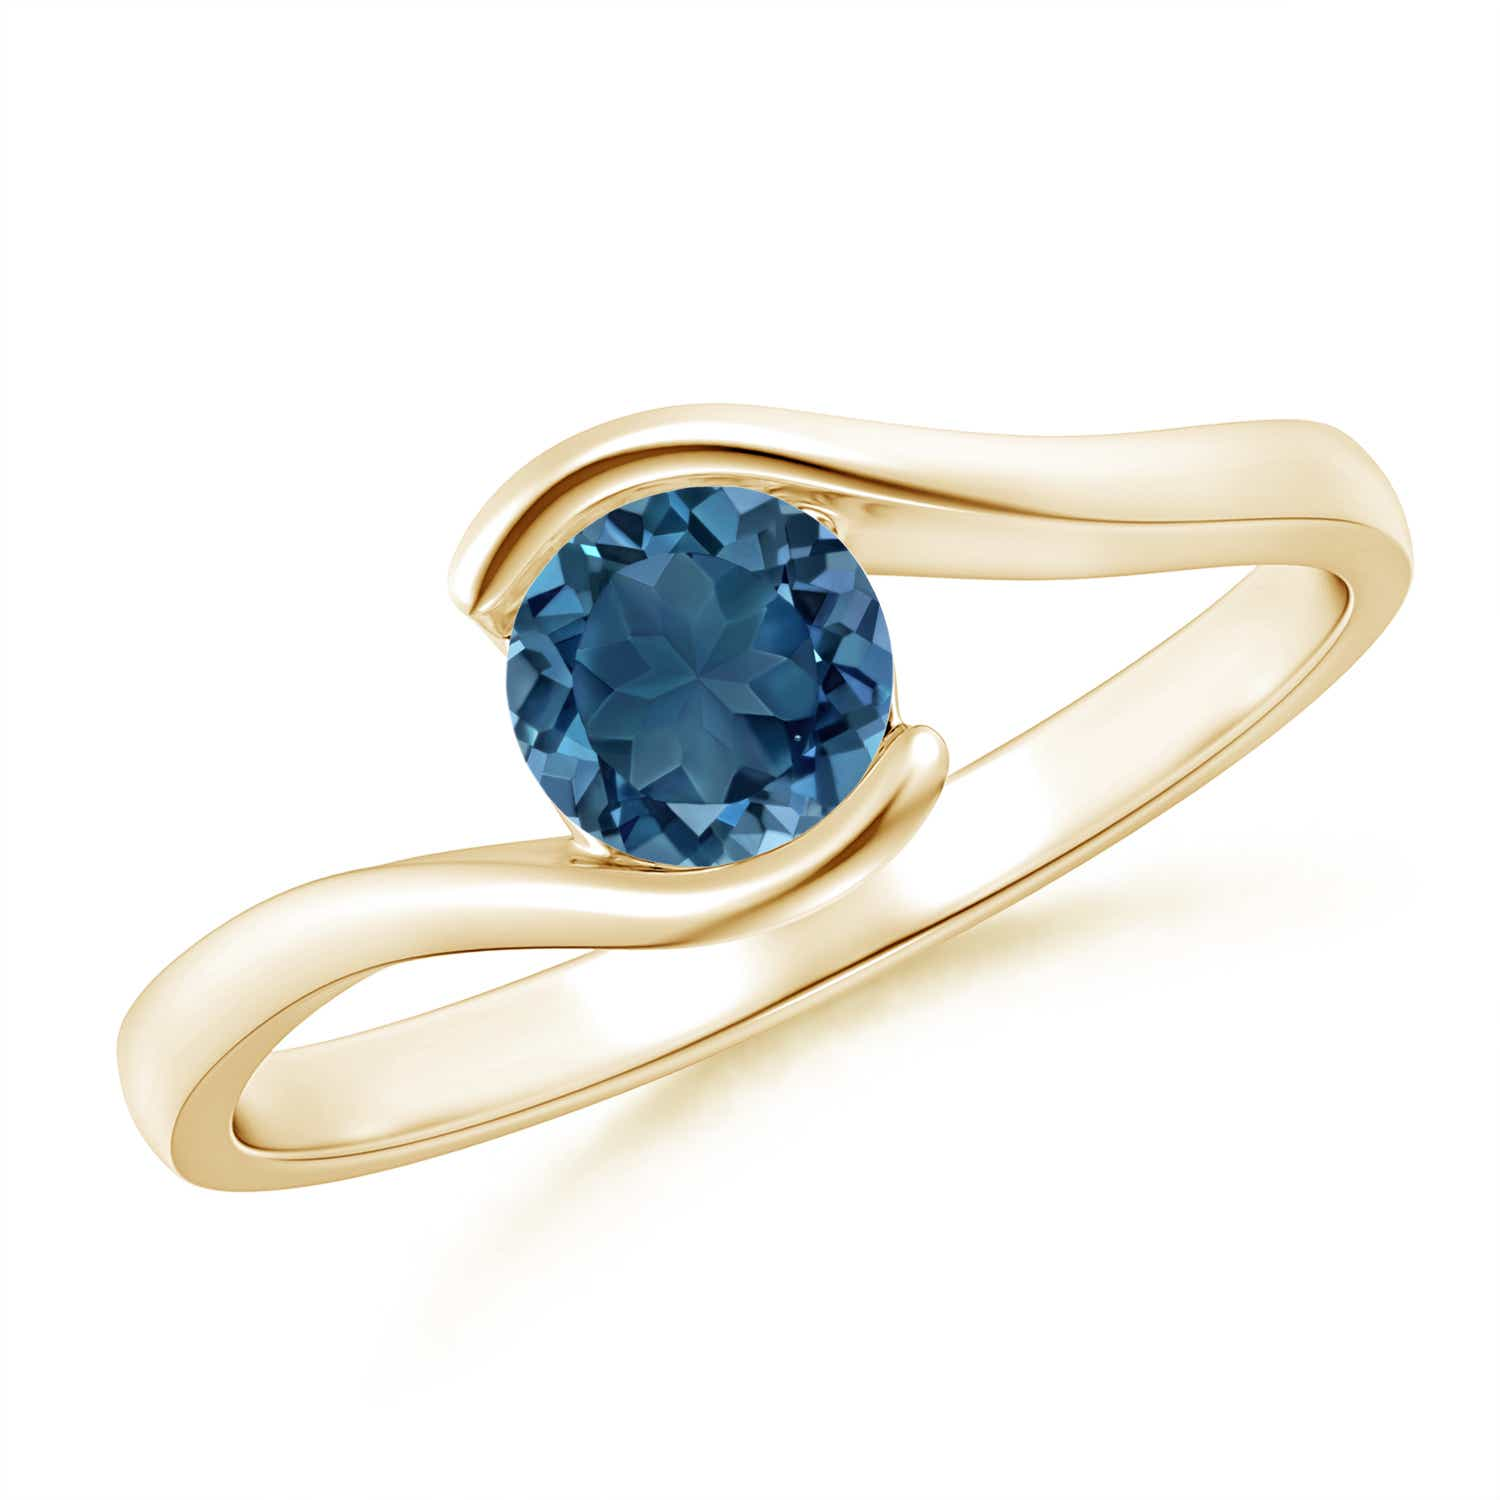 Angara London Blue Topaz Ring in Yellow Gold